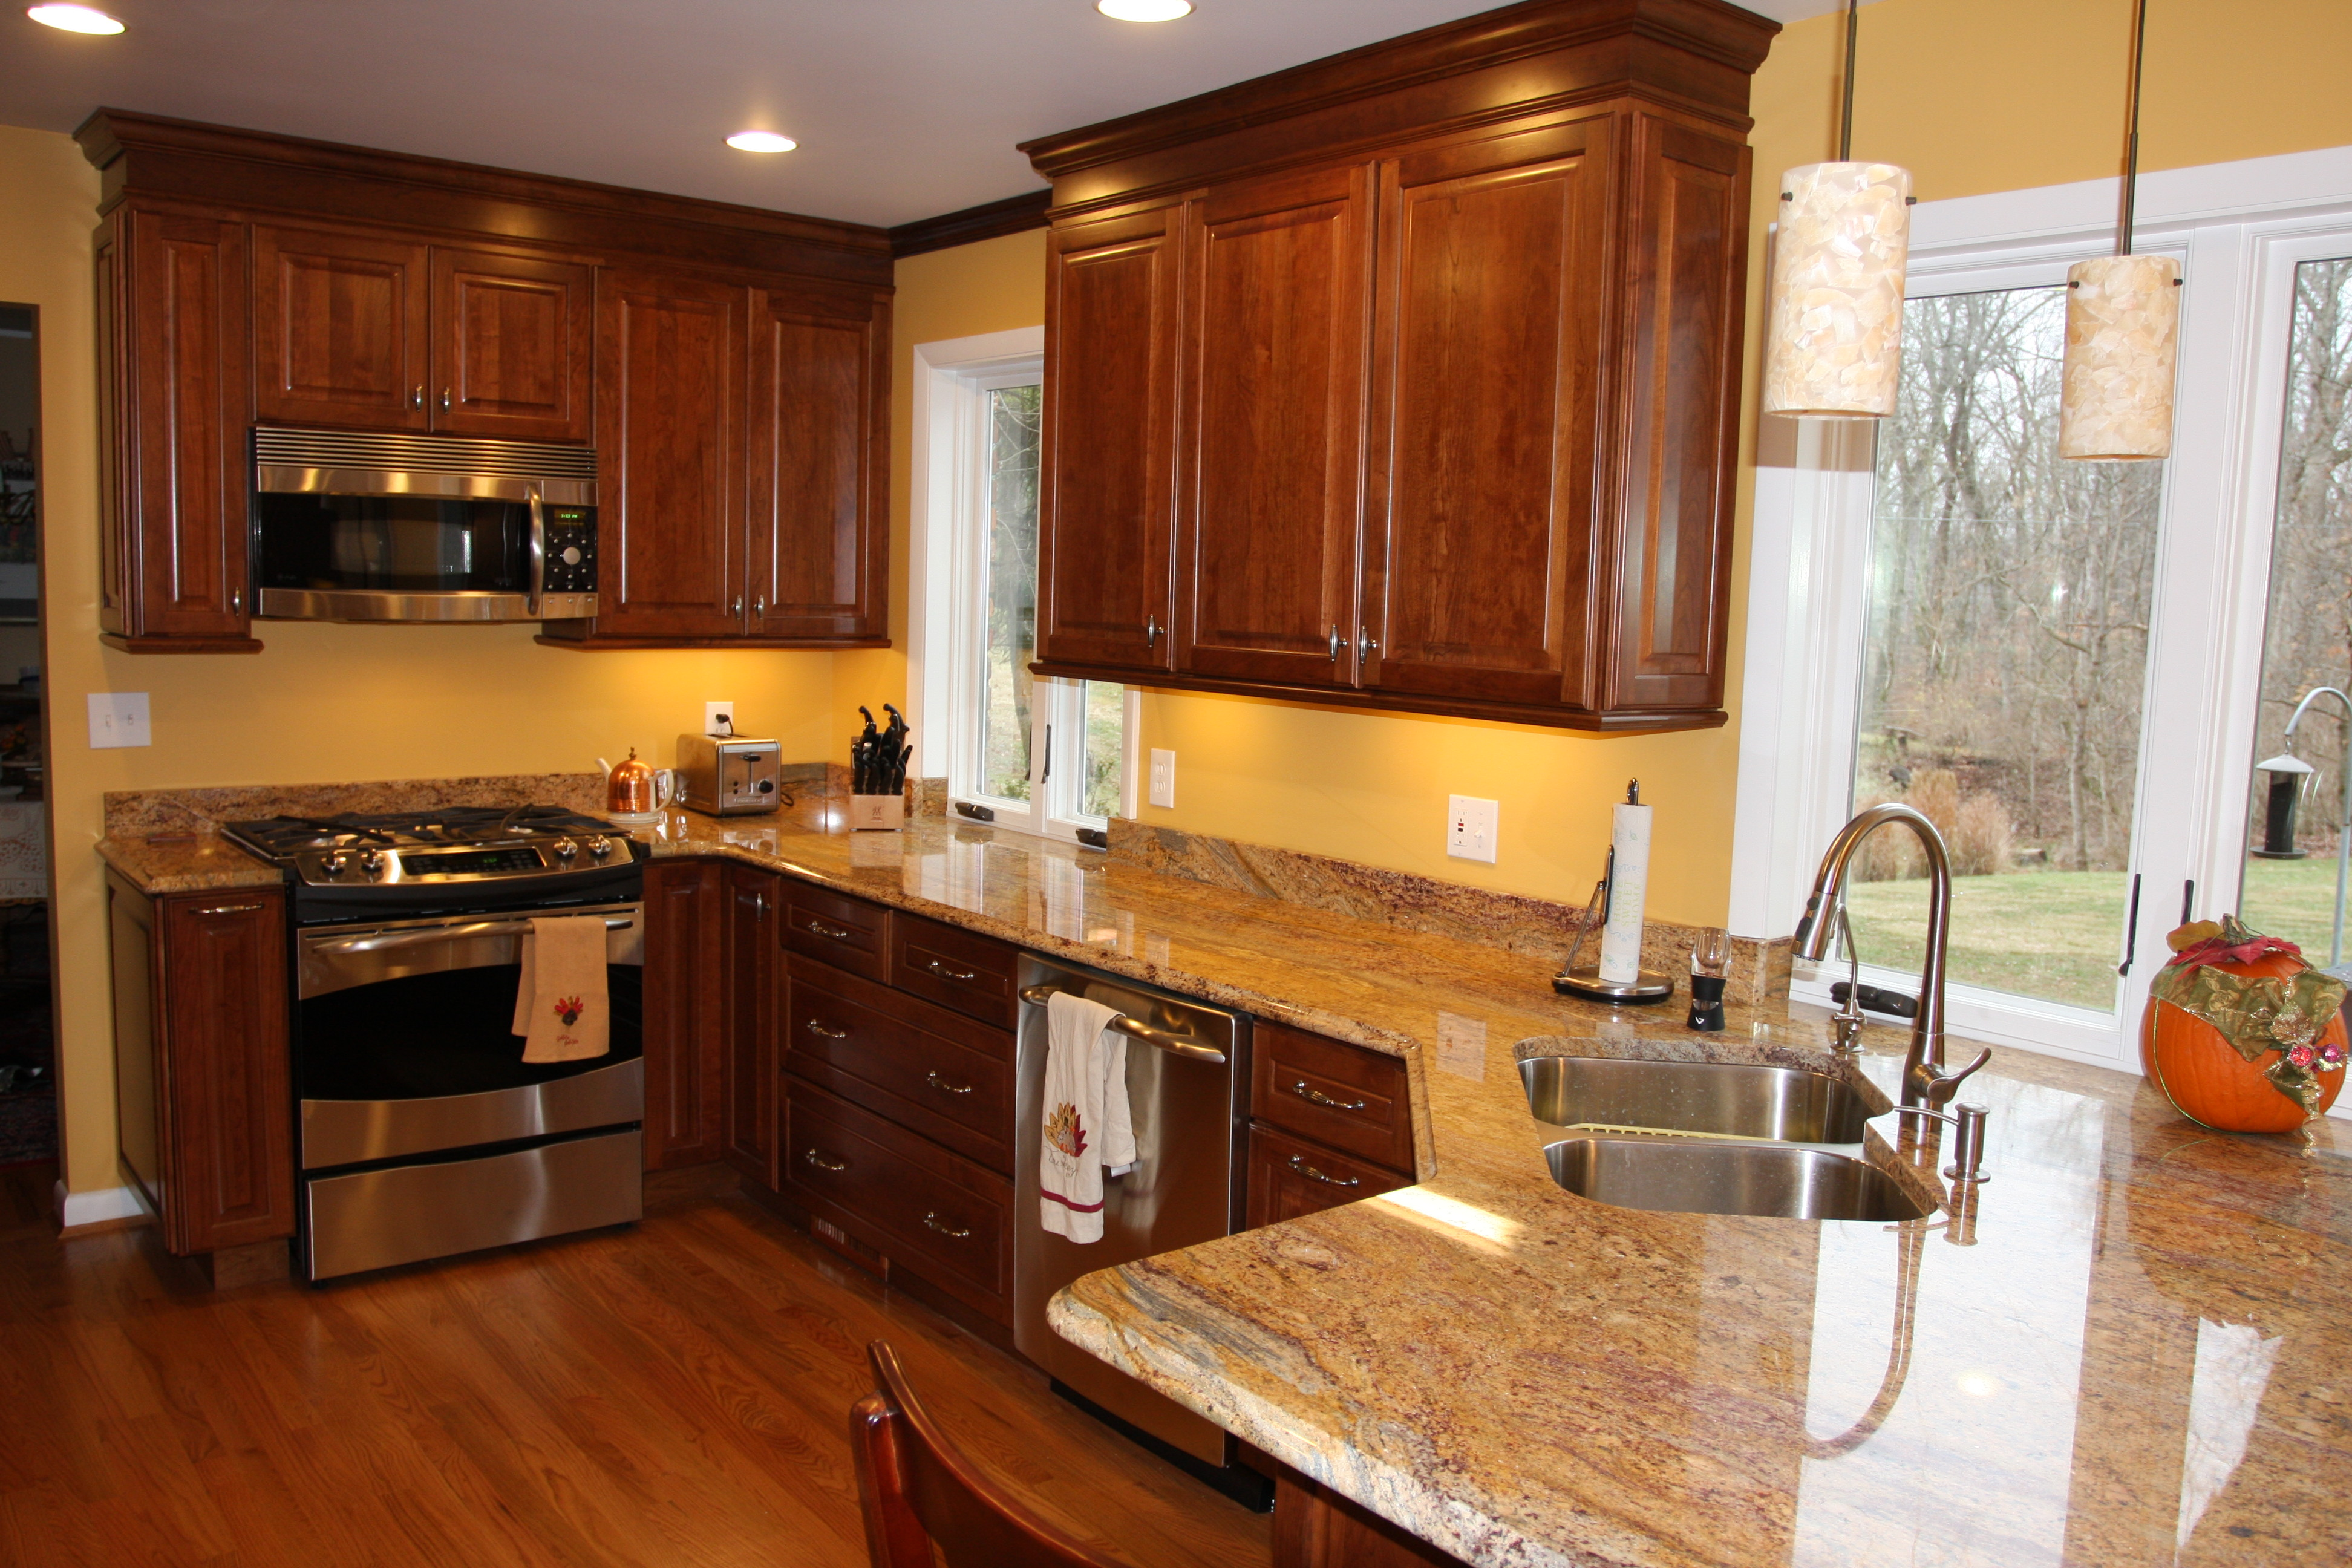 Kitchen Colors That Go With Oak Cabinets Stirn Contracting Celebrates Five Years As One Of